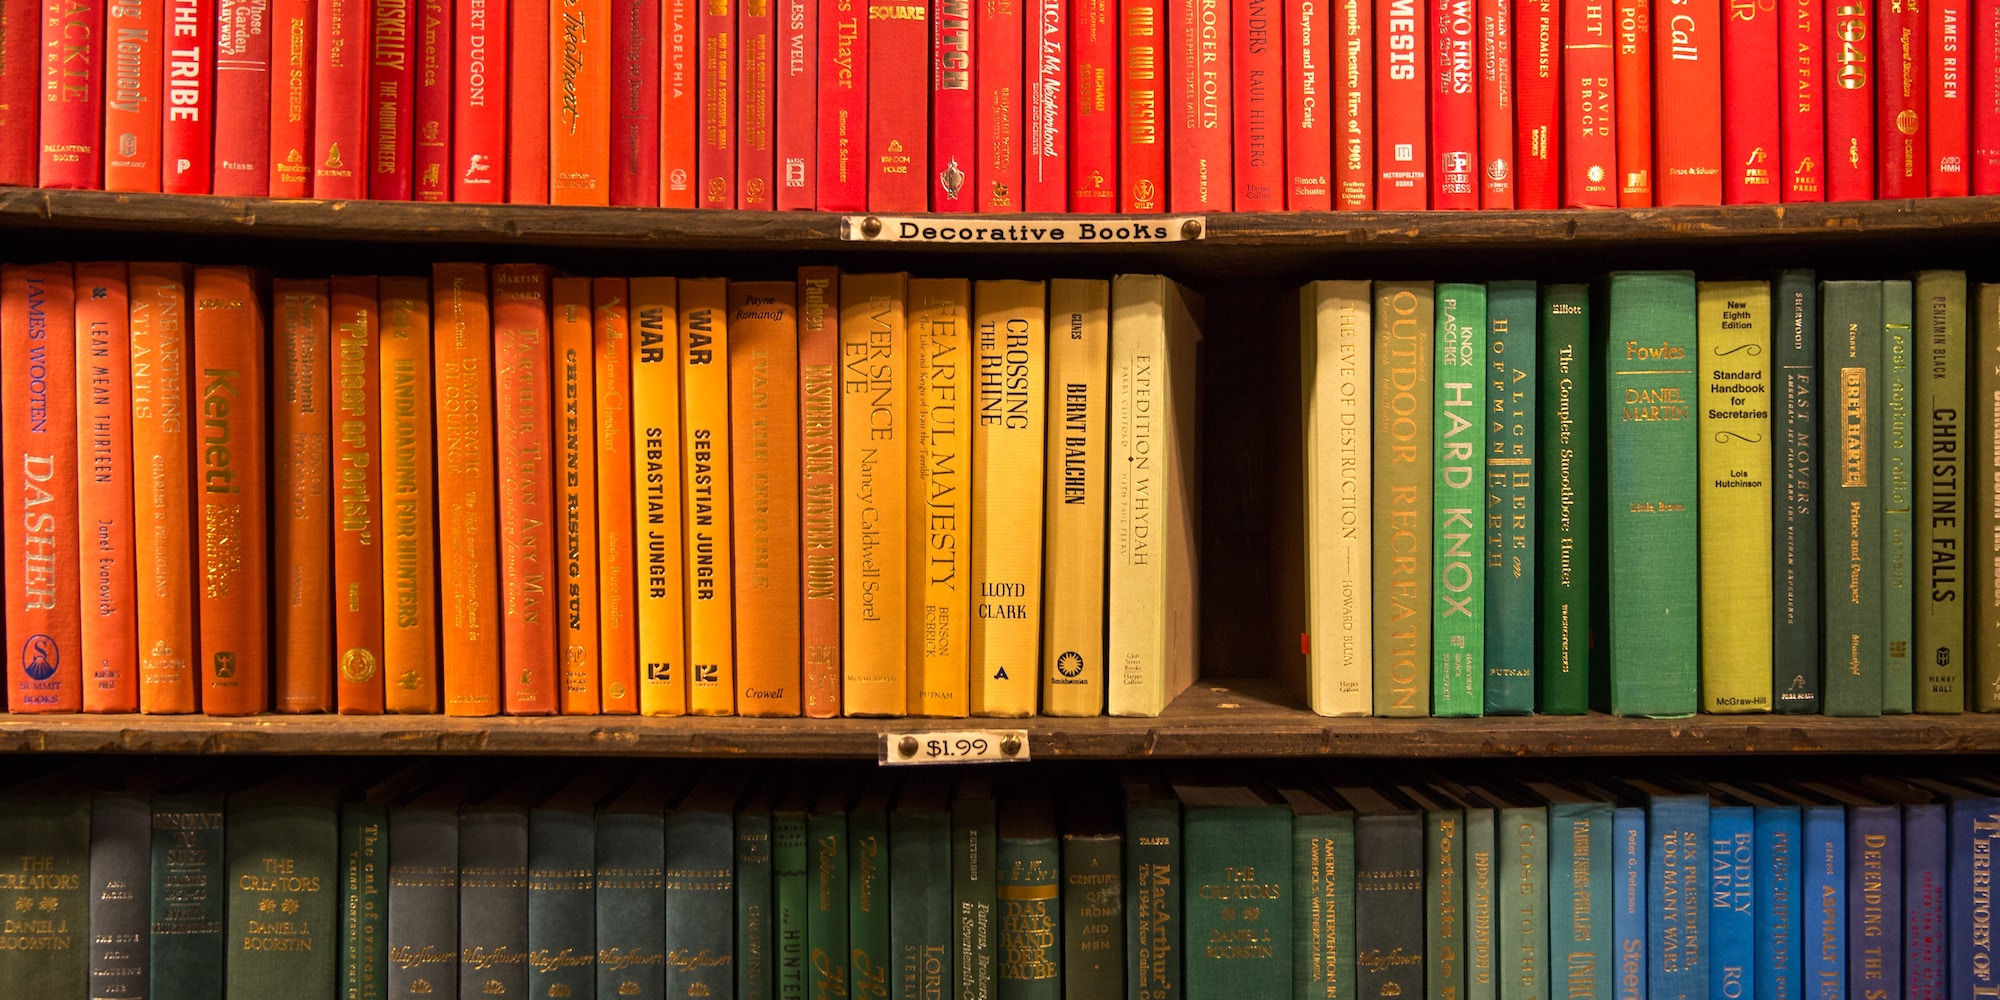 Bookshelves with many colour coded books